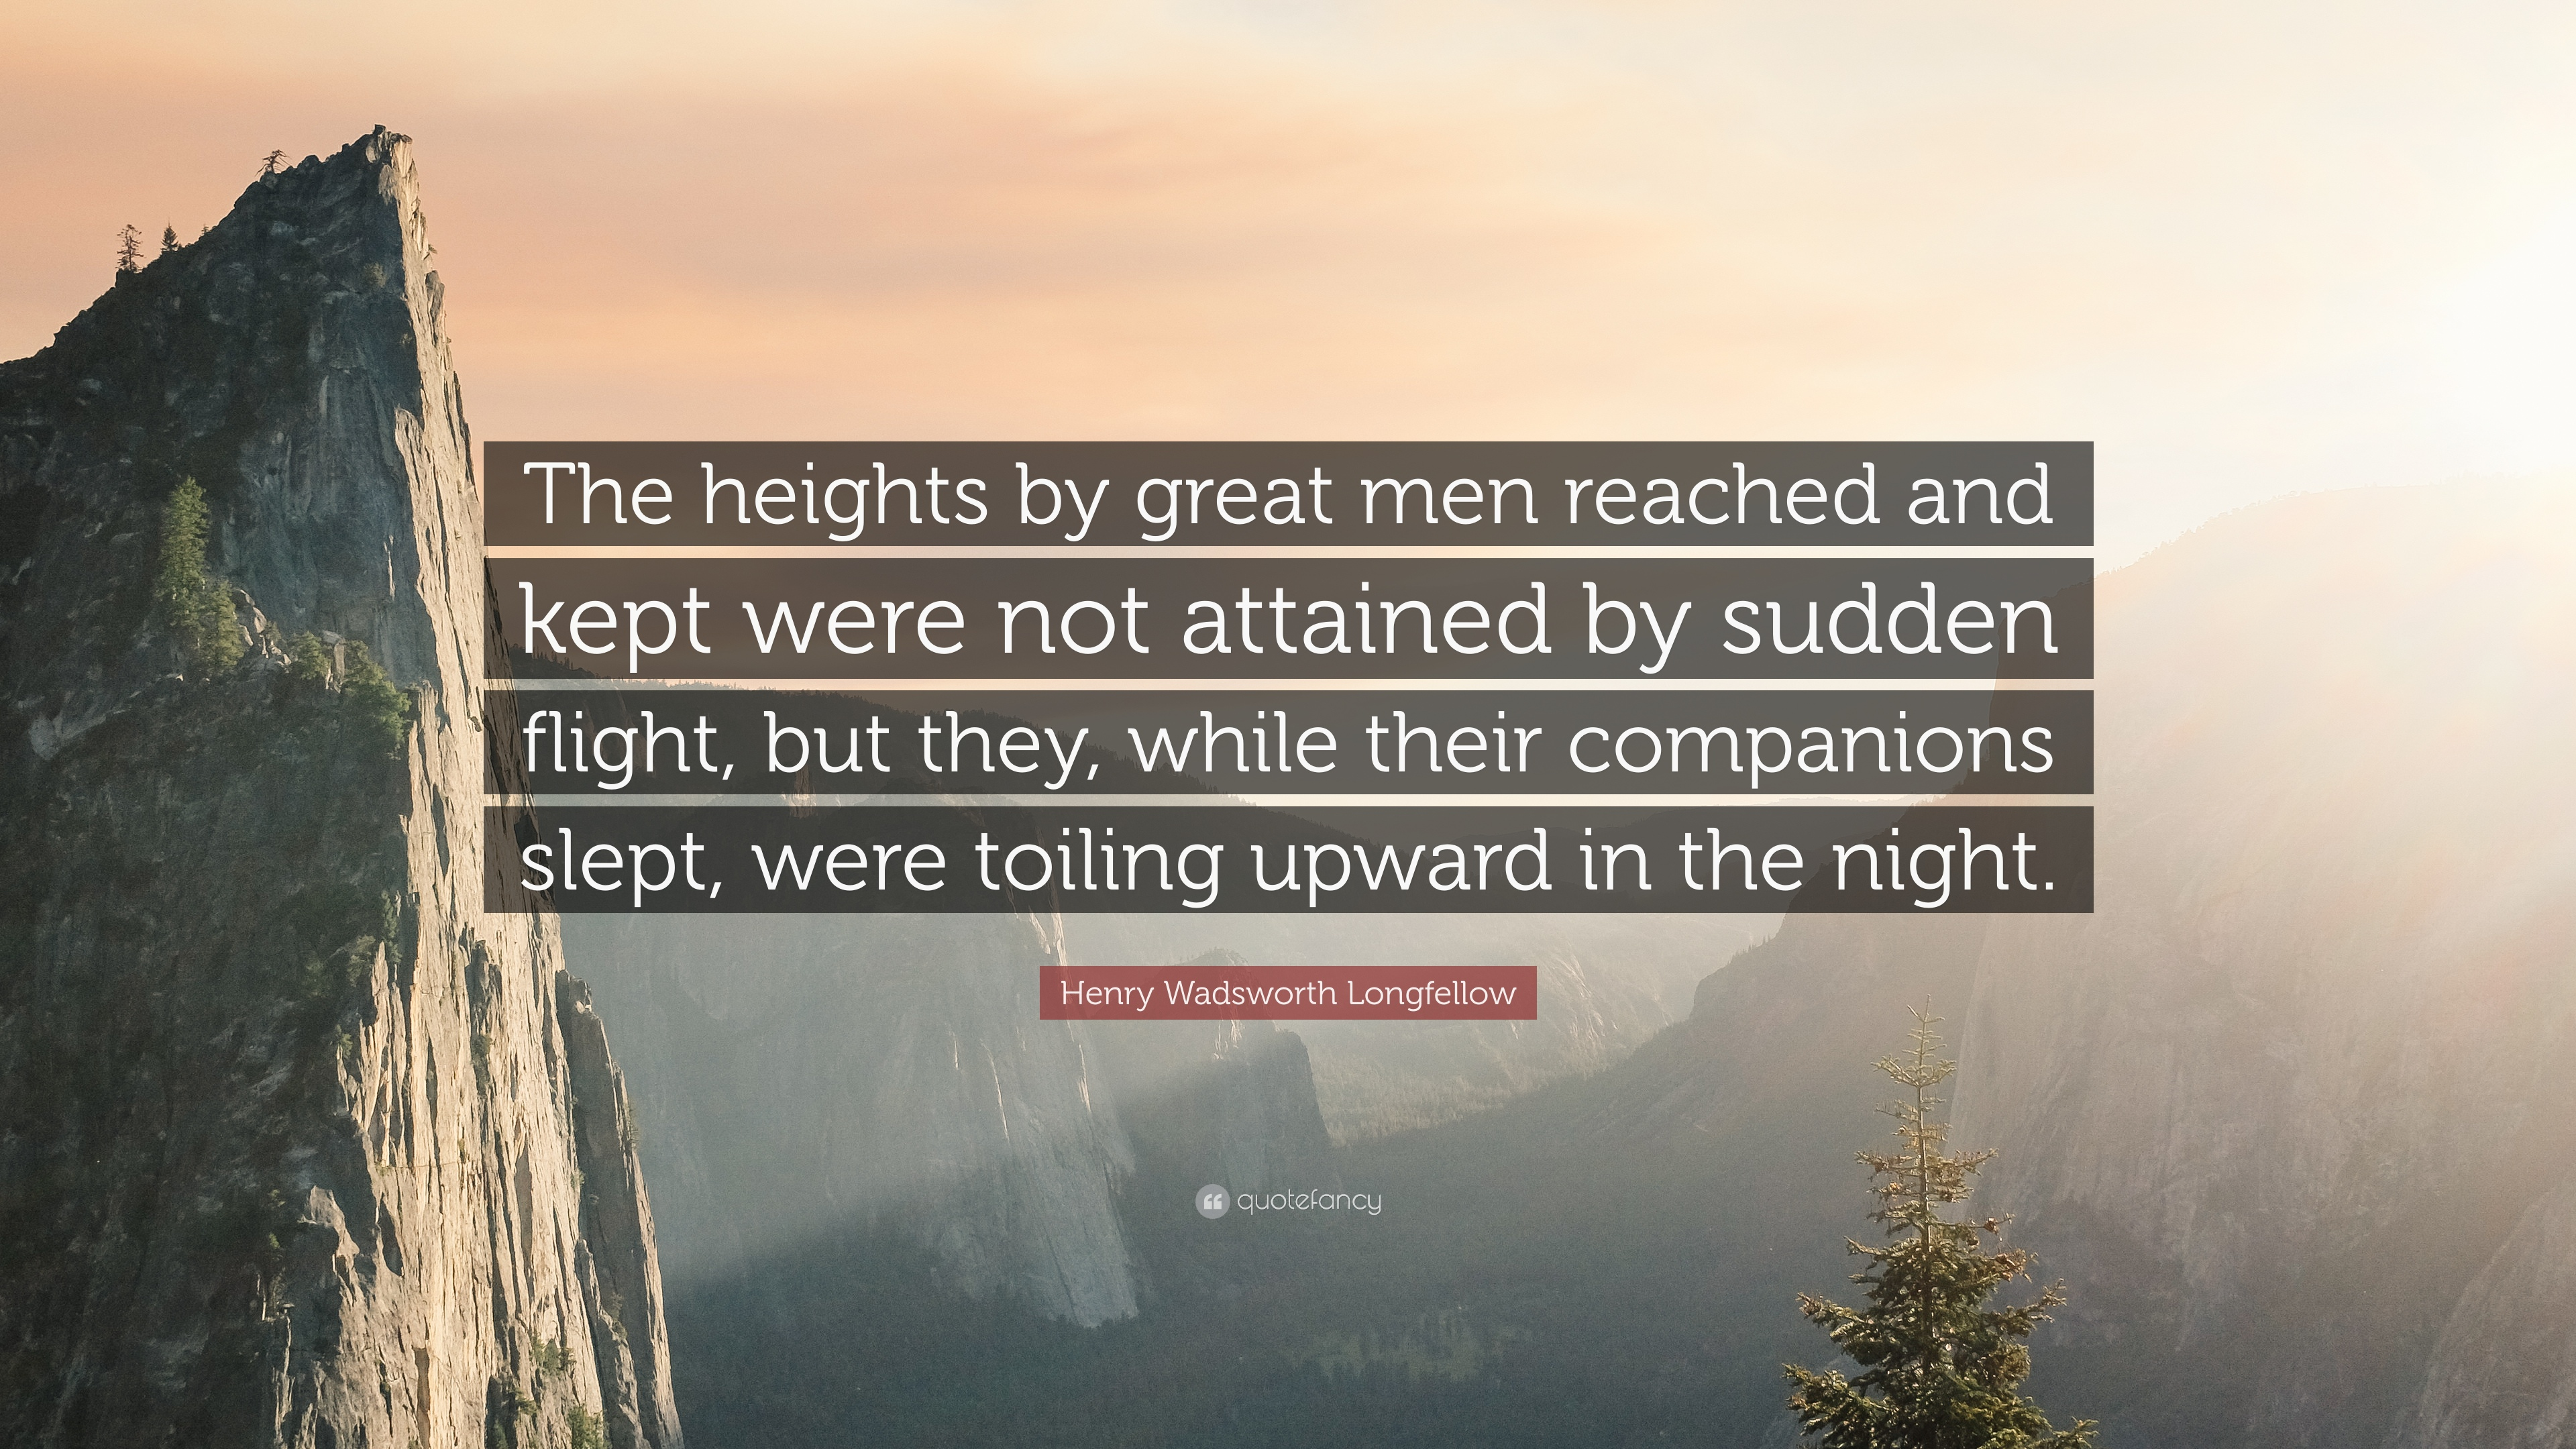 henry wadsworth longfellow quote the heights by great men reached